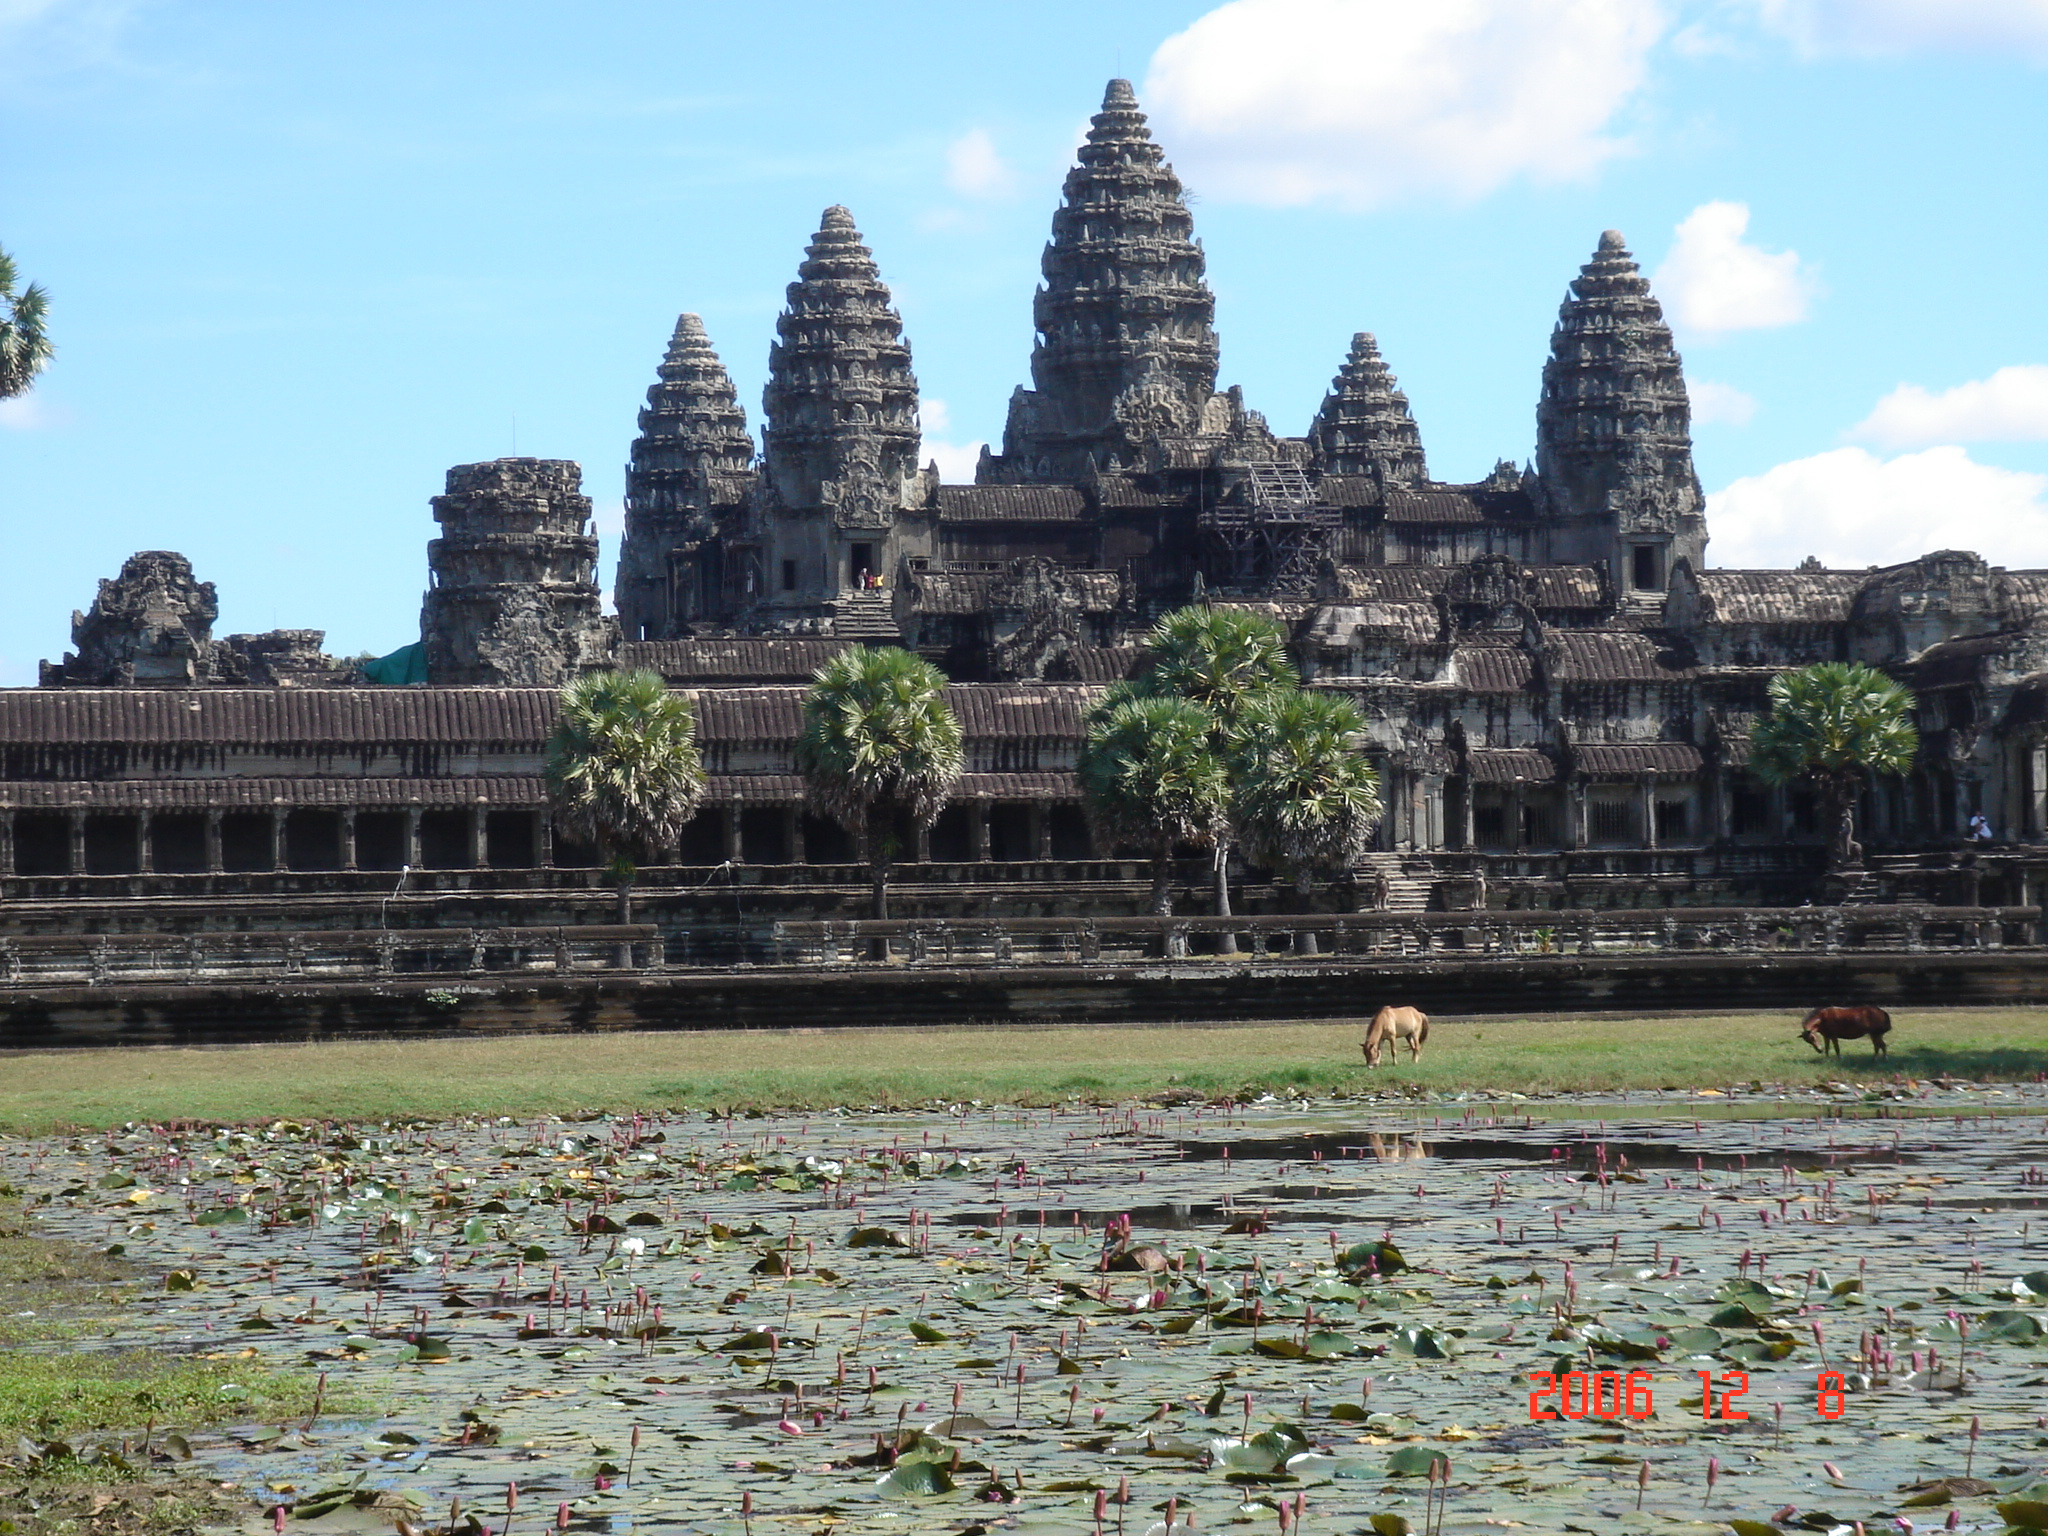 File:AngkorWat 20061209.JPG - Wikipedia, the free encyclopedia